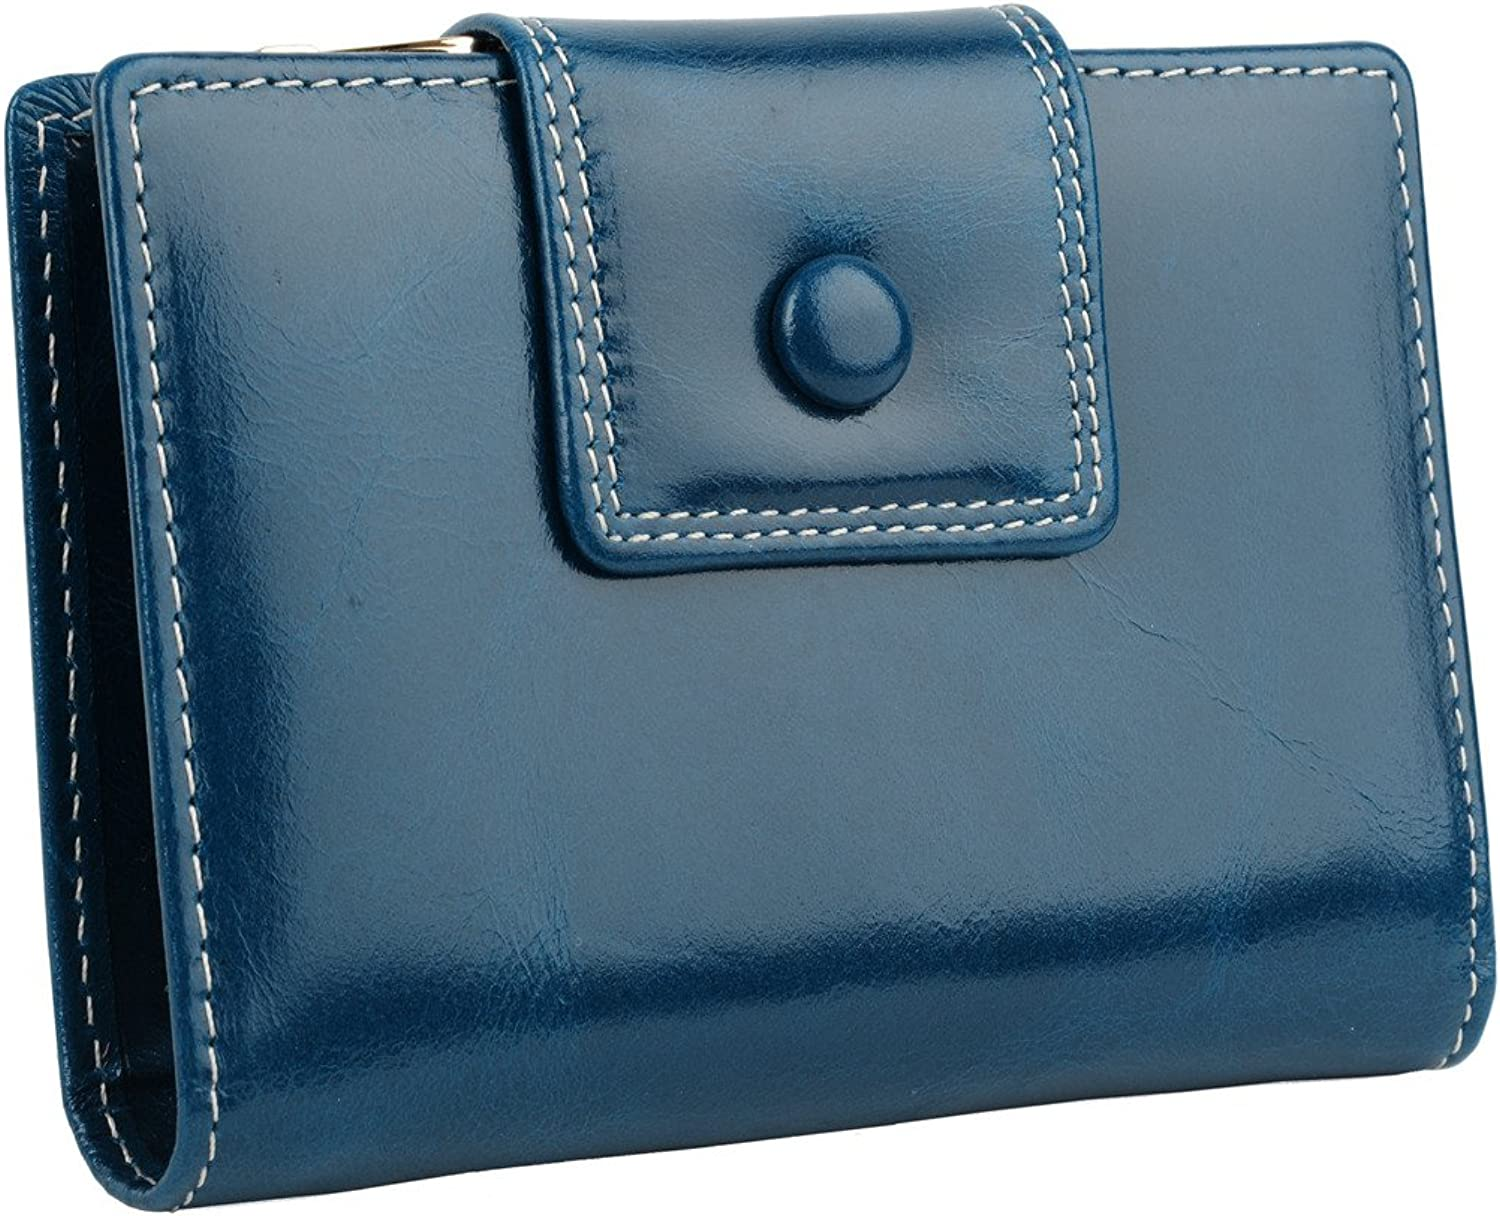 YALUXE Women's Compact Small TriFold Leather Wallet with Zipper Coin Pocket